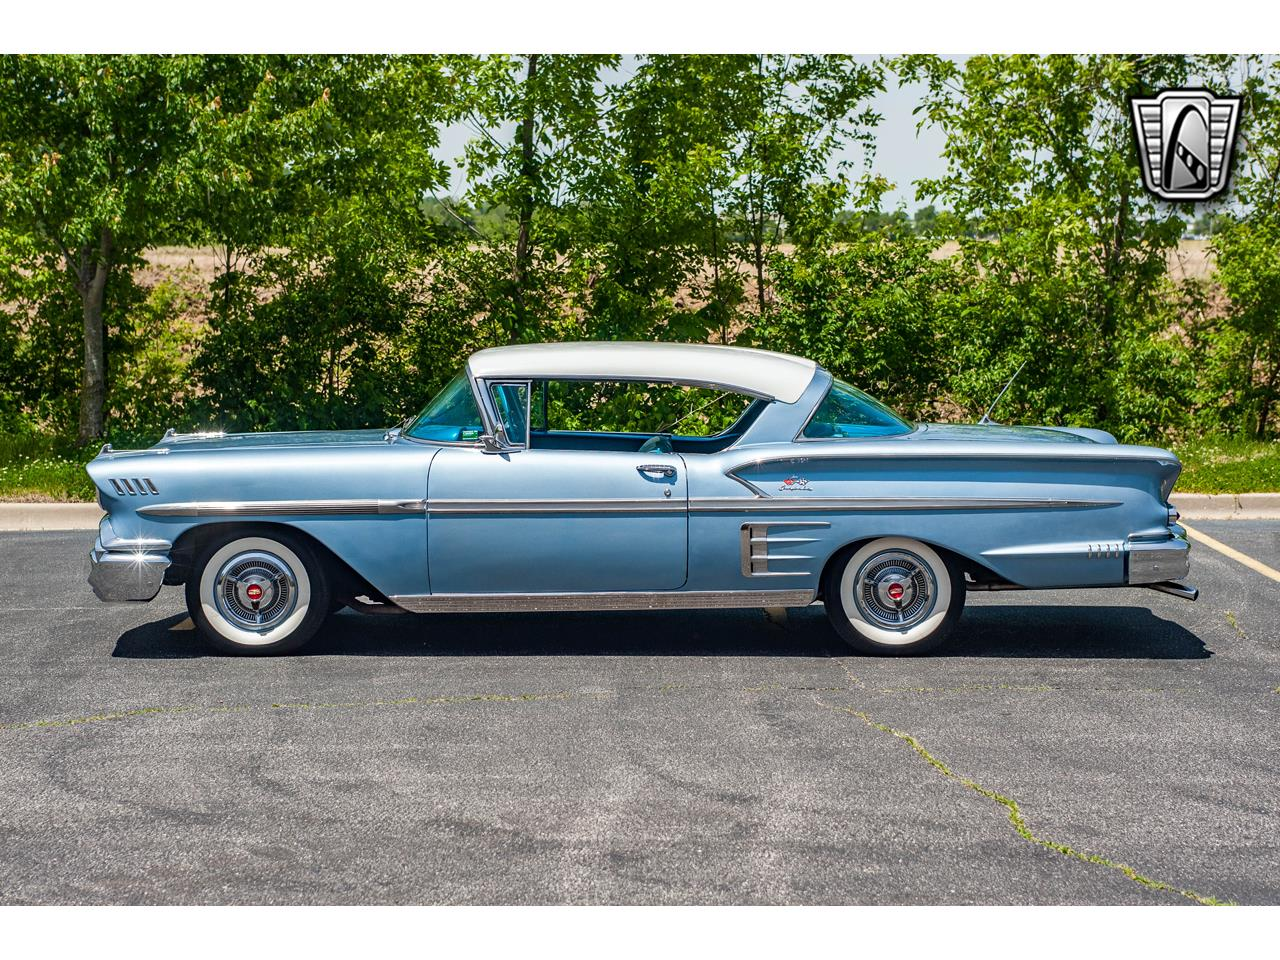 Large Picture of Classic 1958 Chevrolet Impala located in Illinois Offered by Gateway Classic Cars - St. Louis - QB9Q